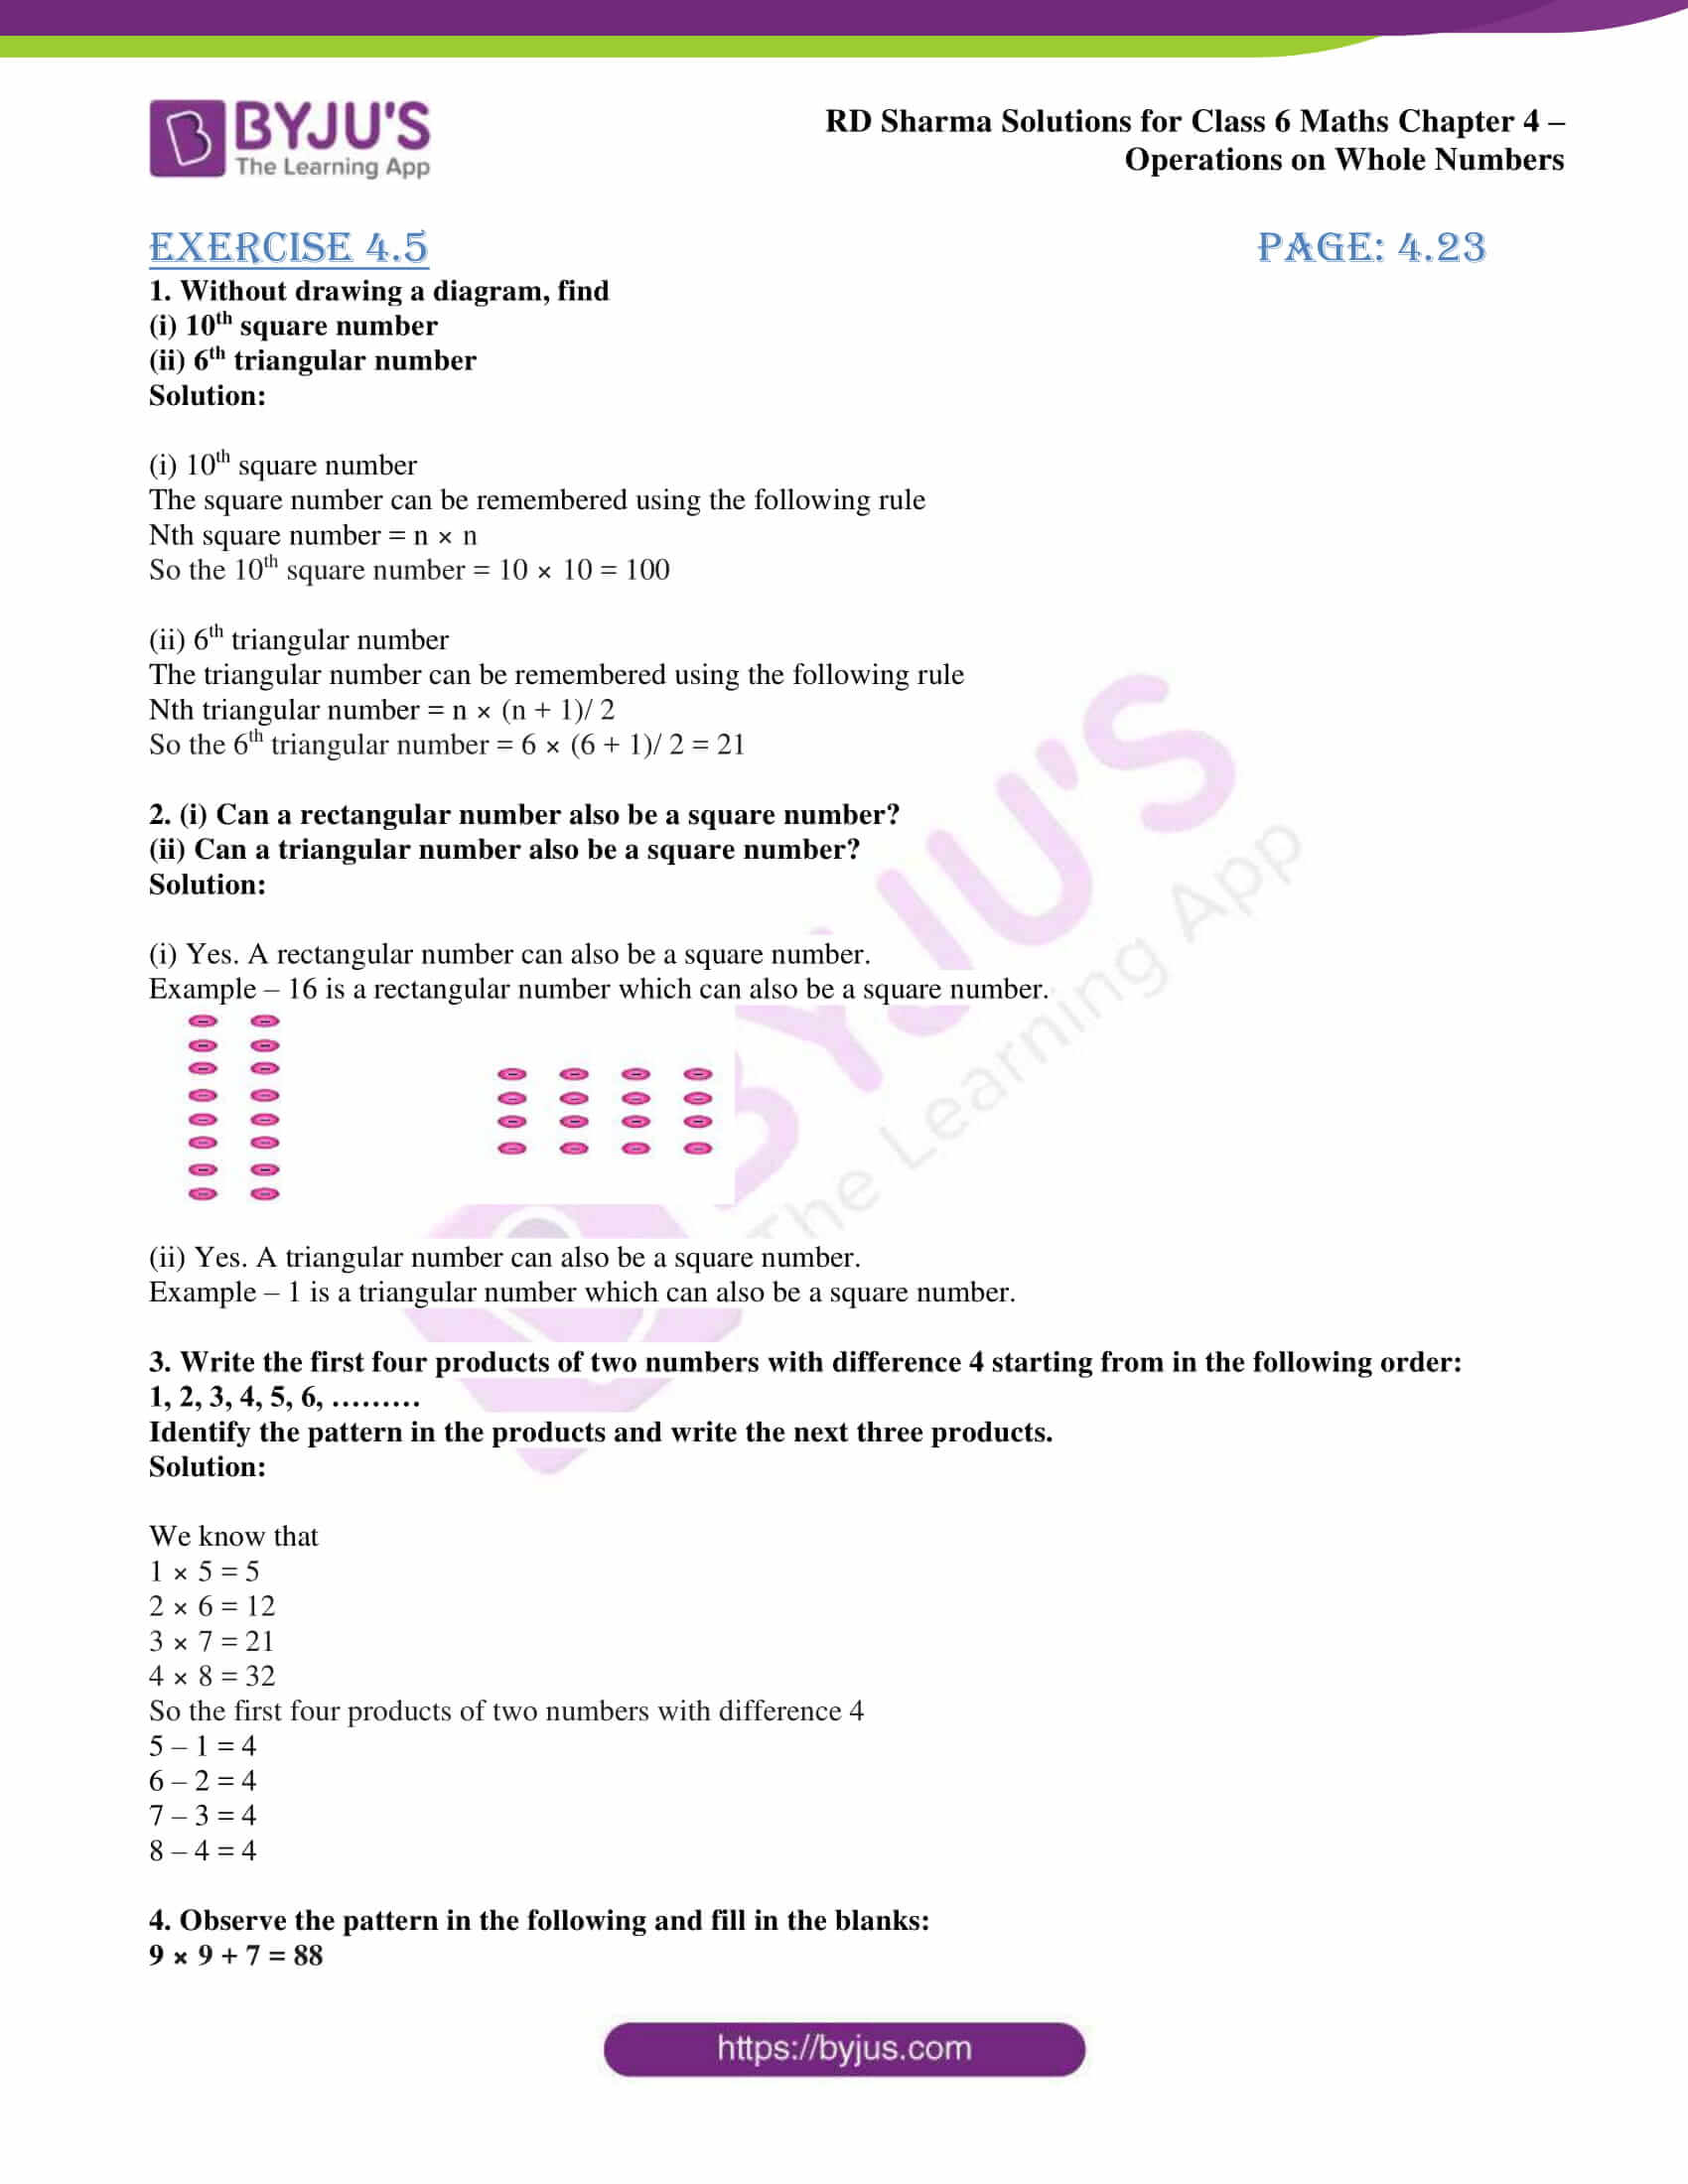 rd sharma solution class 6 maths chapter 4 ex 5